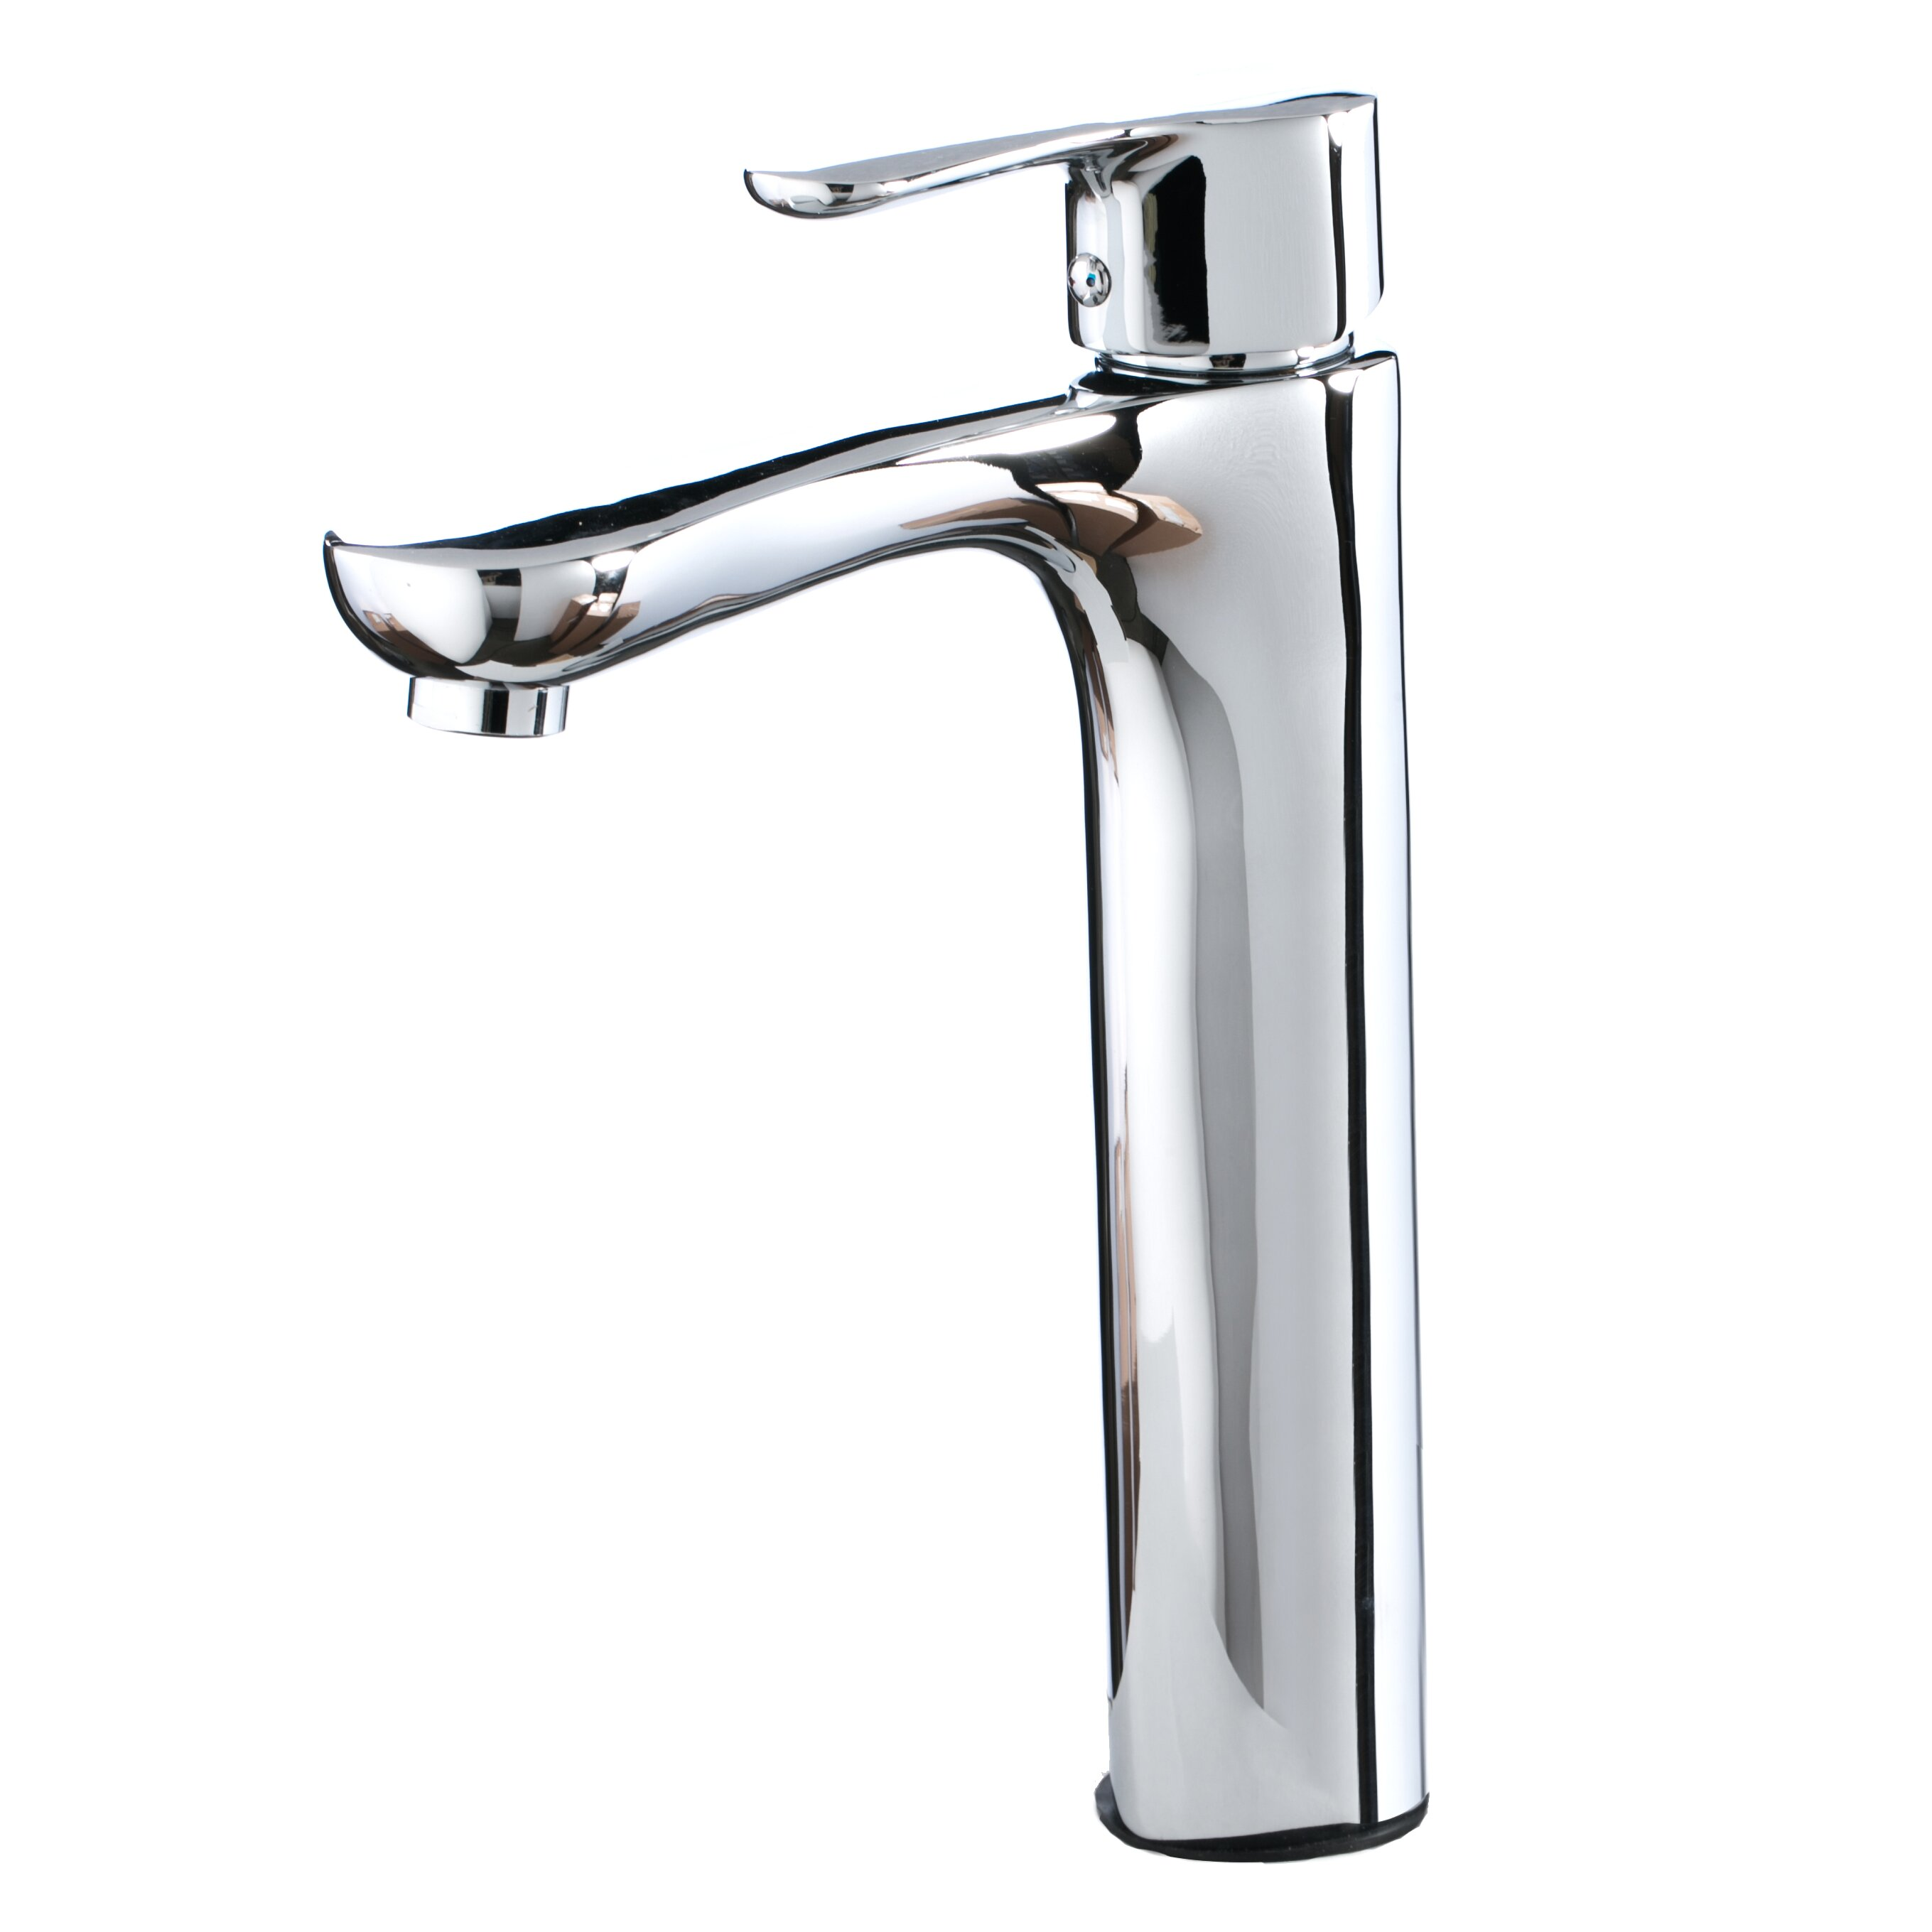 Kokols single handle single hole vessel faucet wayfair for How to clean pitted chrome bathroom fixtures